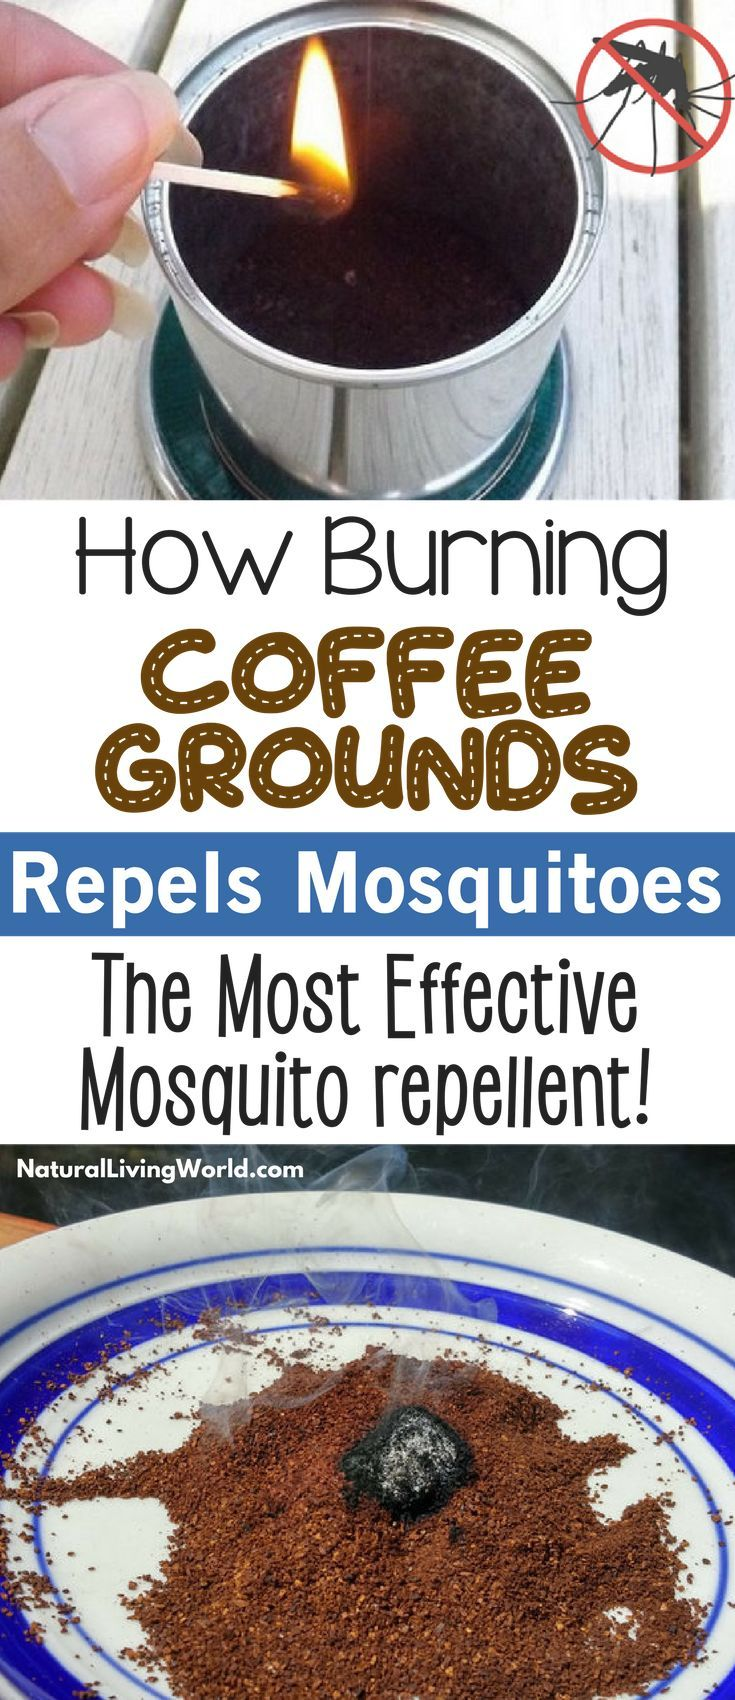 8 Brilliant Ways To Recycle Used Coffee Grounds Roughing It Mosquito Repellent Circuitbest Repellentindoor Diy Natural How Burn Repel Mosquitos And Other Insects At Home Most Effective Bug Repeller